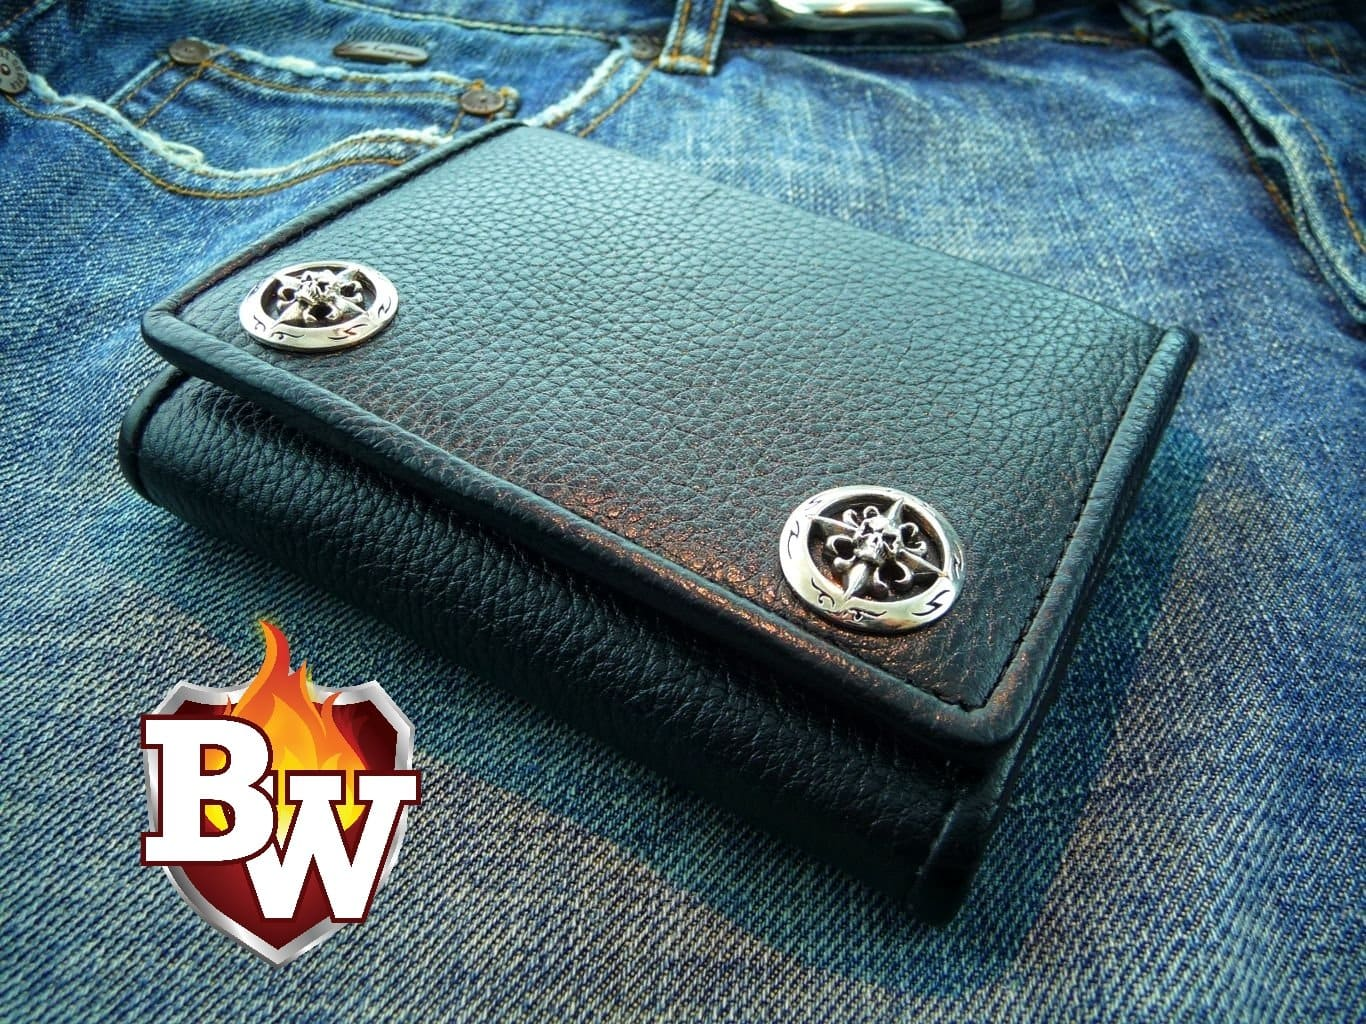 Stiletto 5-inch  Leather Biker Wallet | Custom Handmade Men's Leather Wallets at Biker-Wallets.com